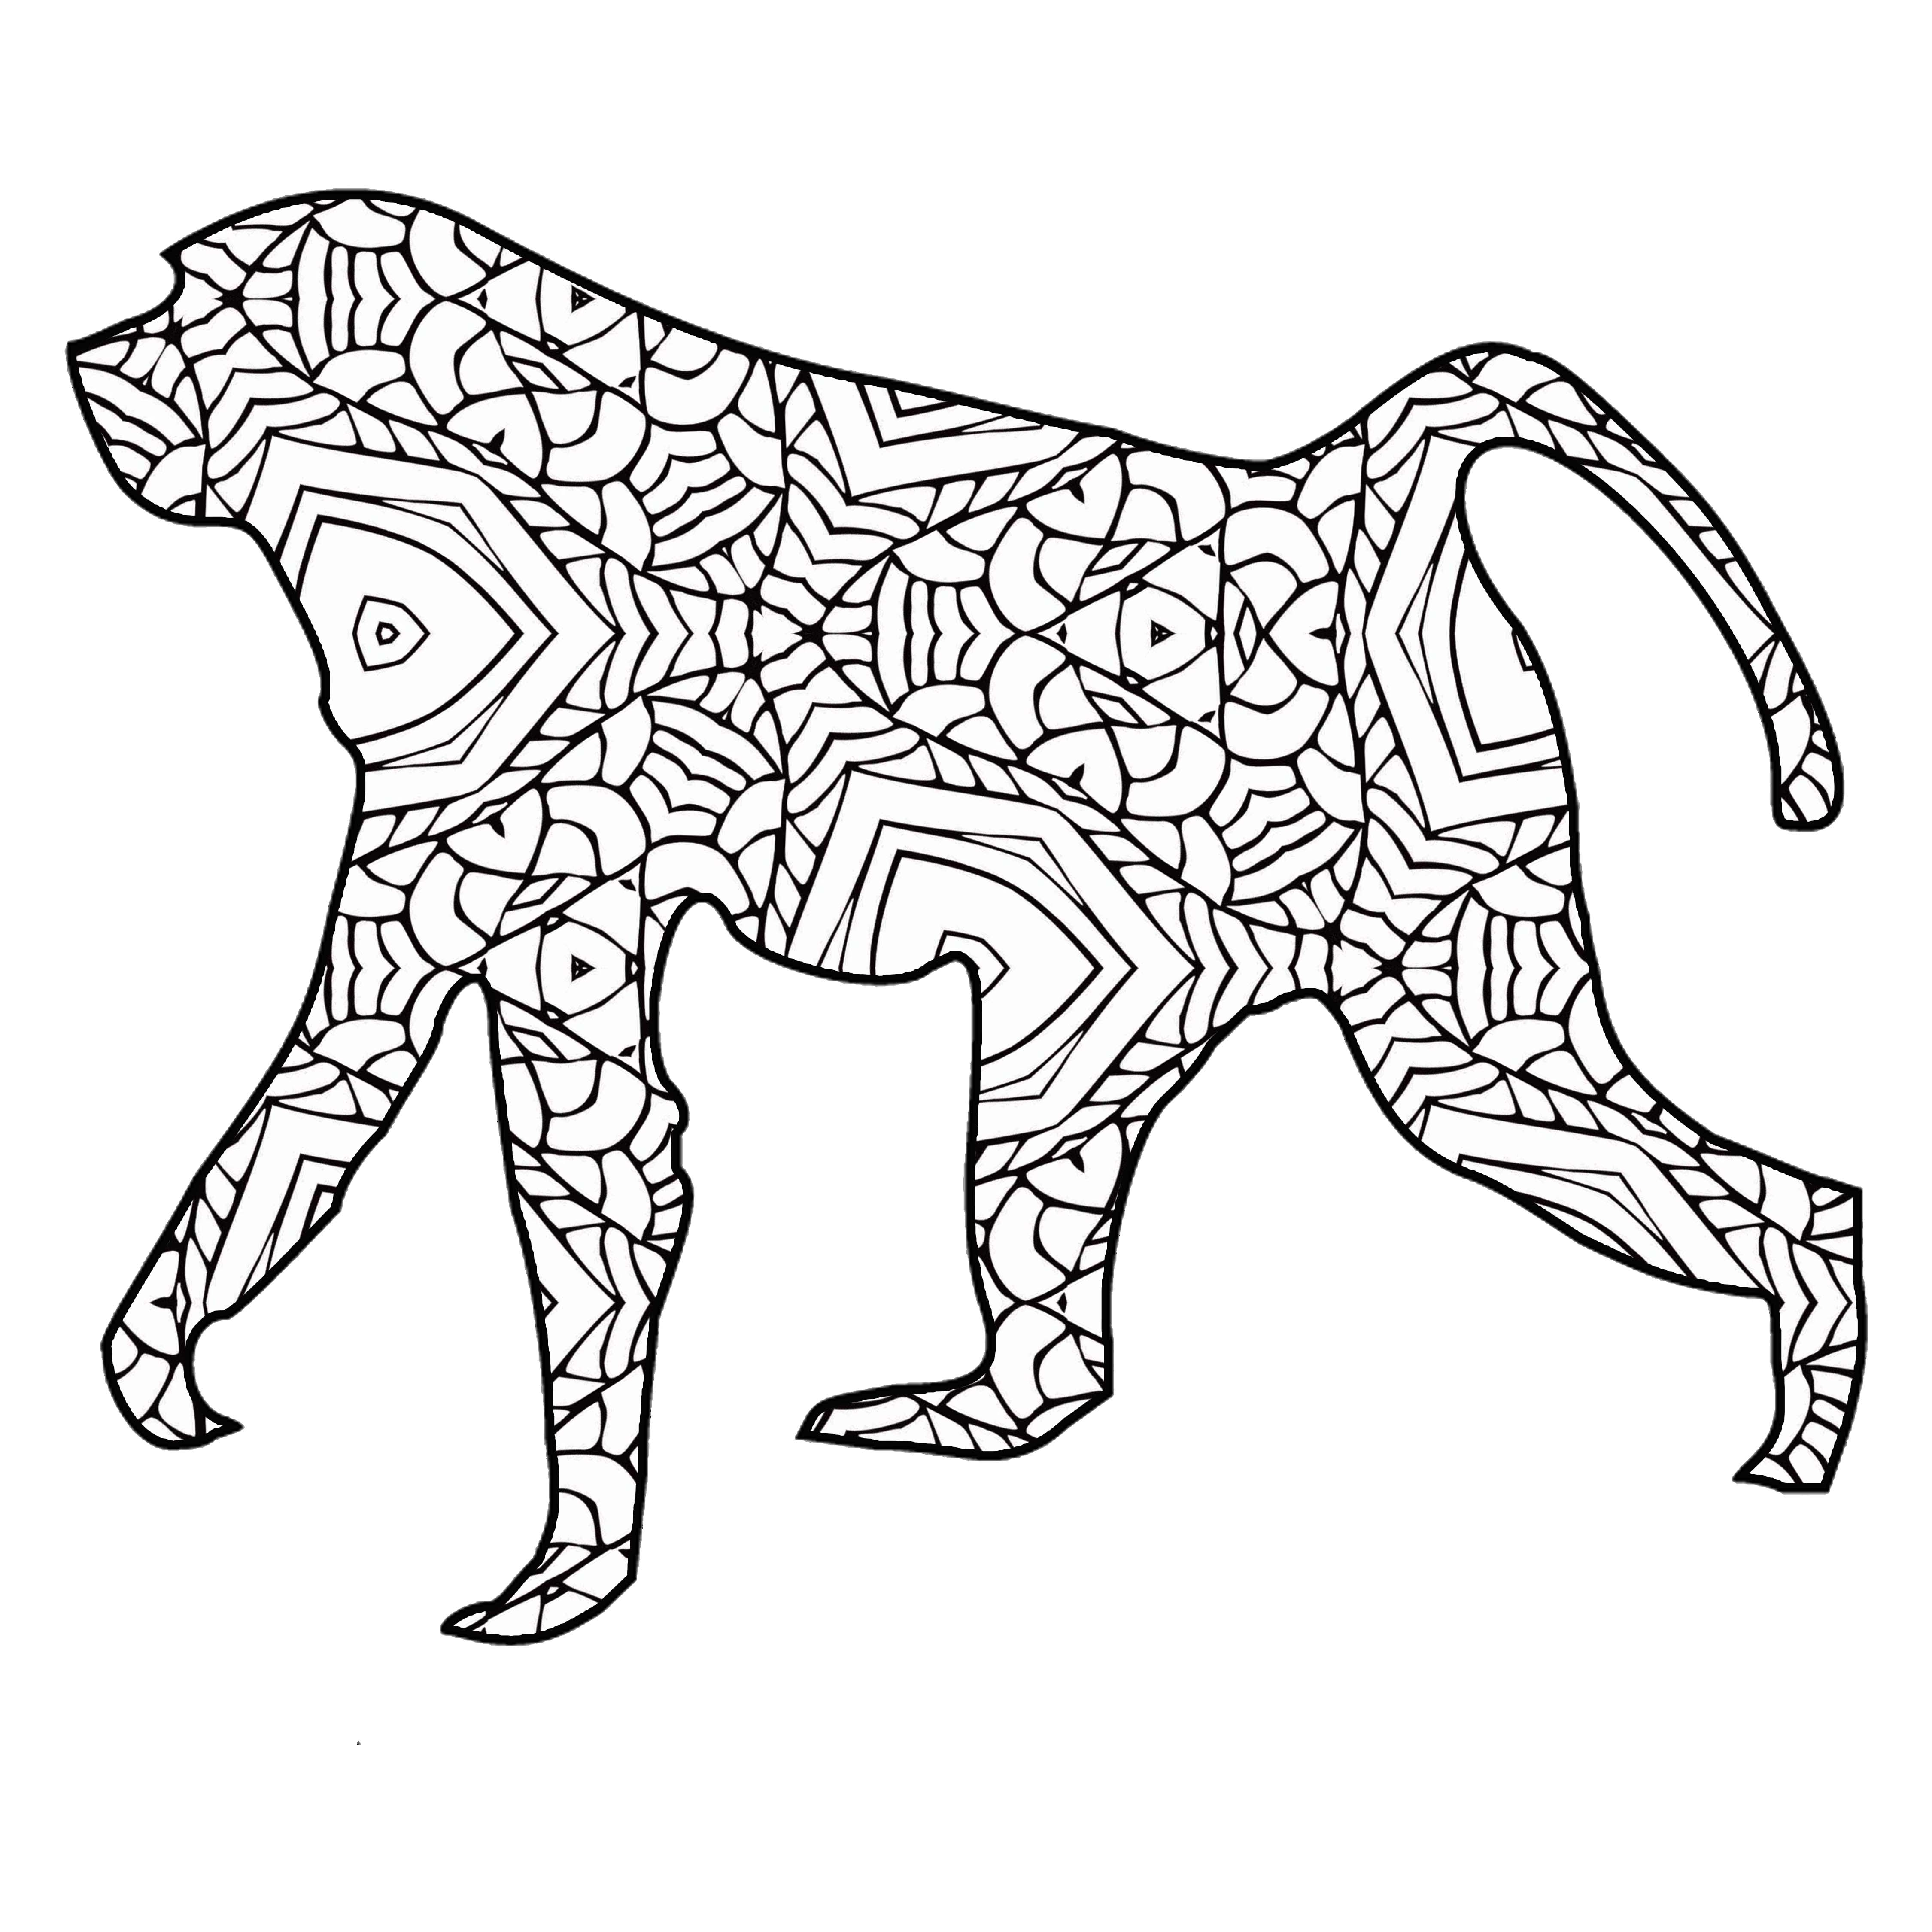 Ausmalbilder Zootiere: 30 Free Coloring Pages /// A Geometric Animal Coloring